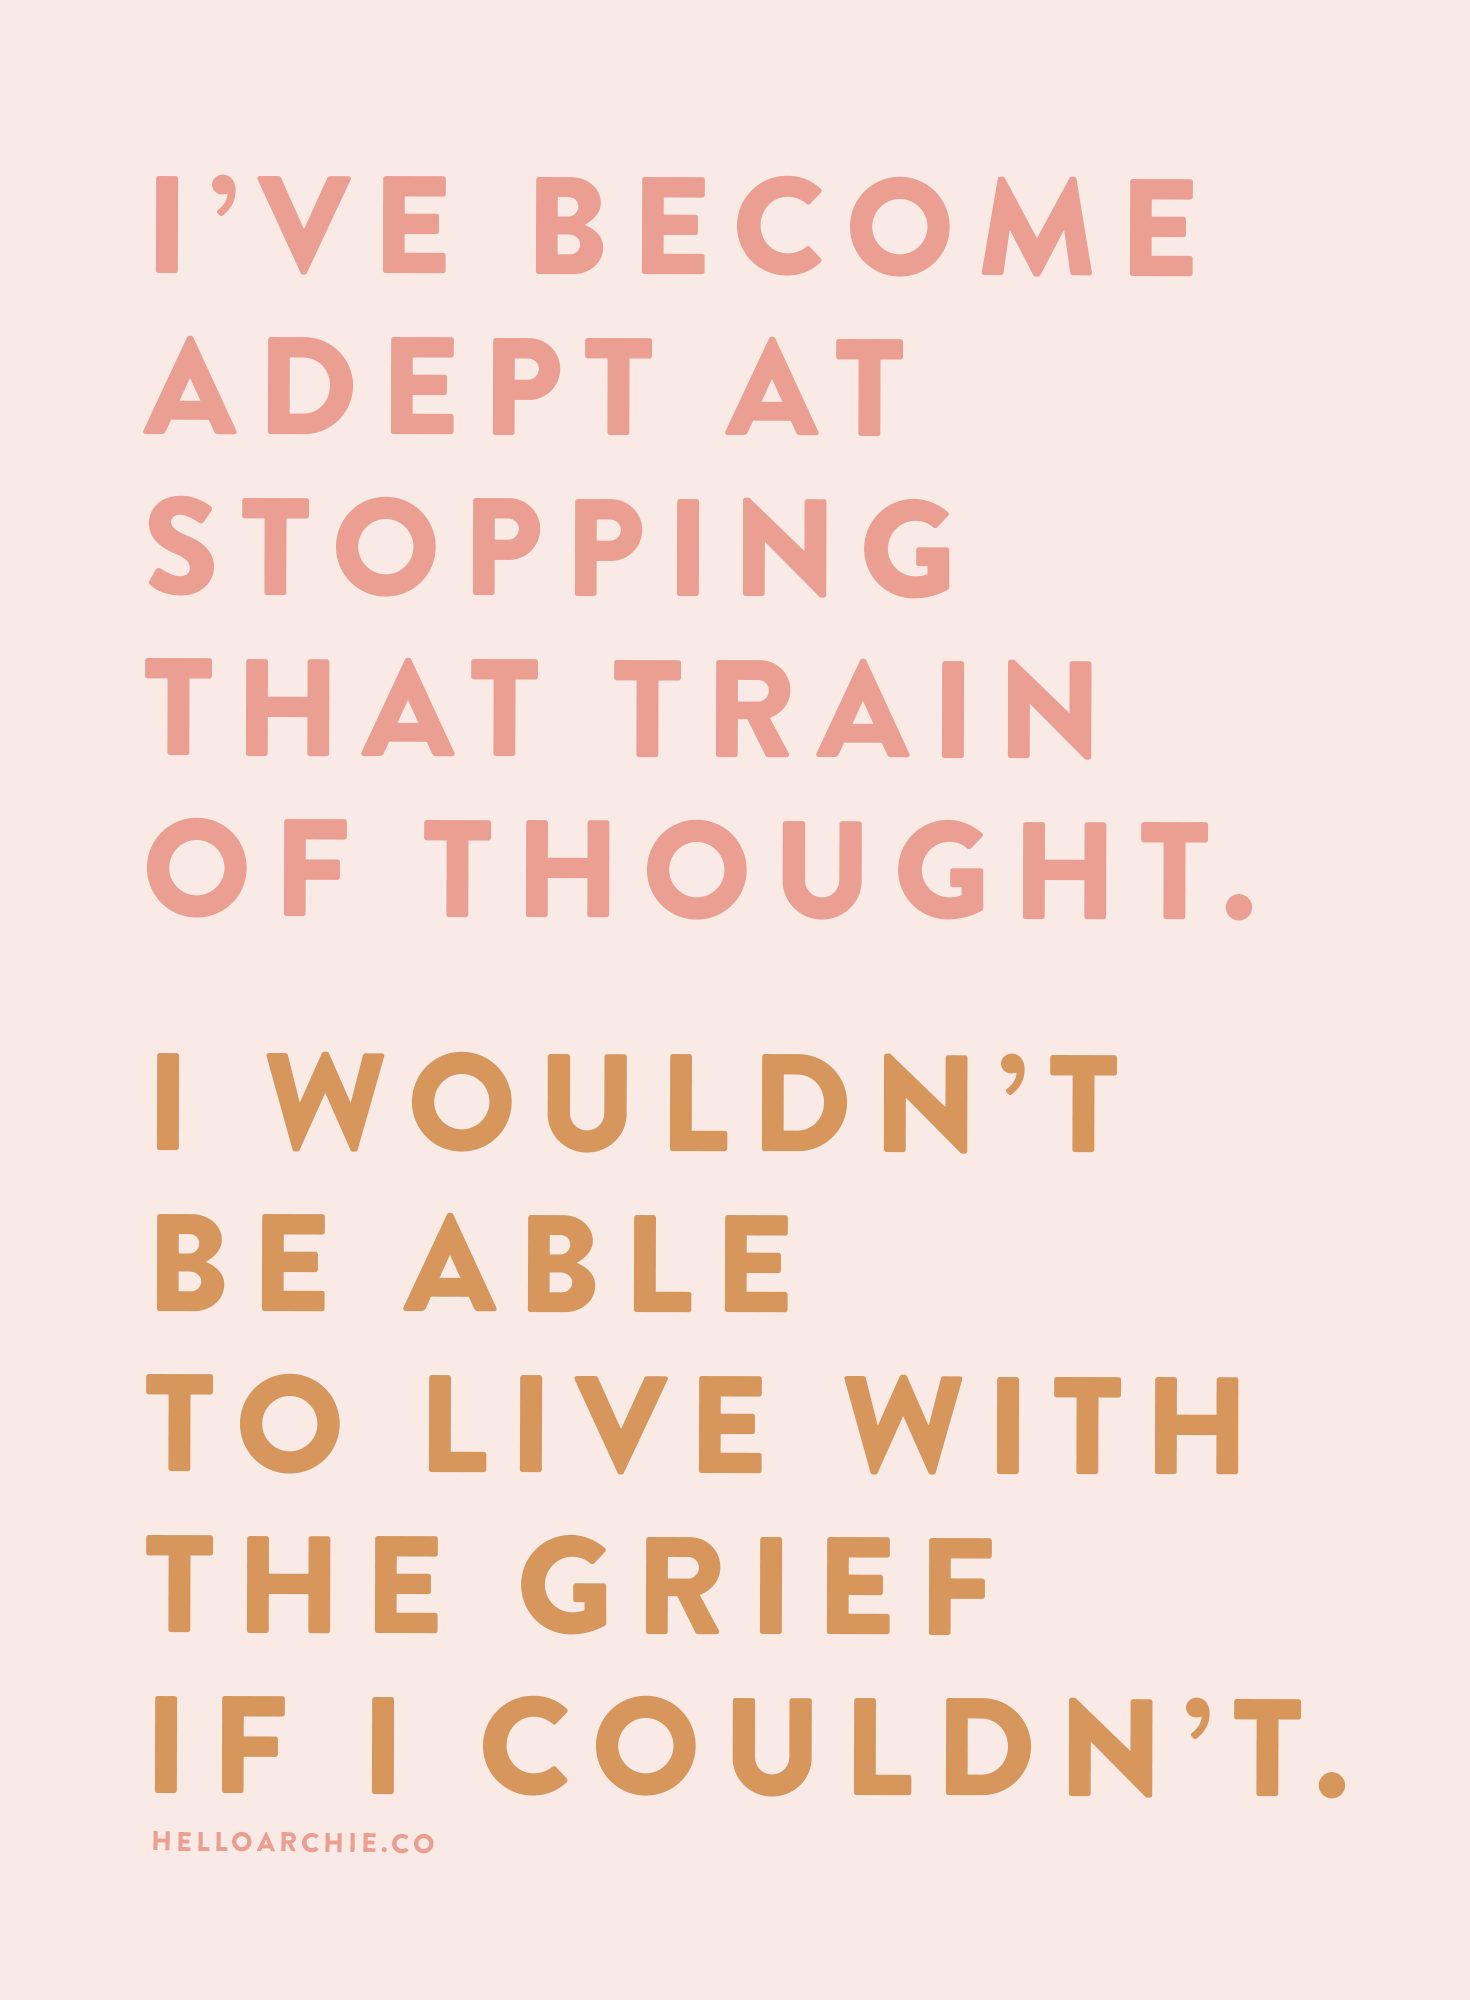 I think about it now but I've become adept at stopping that train of thought. I wouldn't be able to live with the grief if I couldn't.